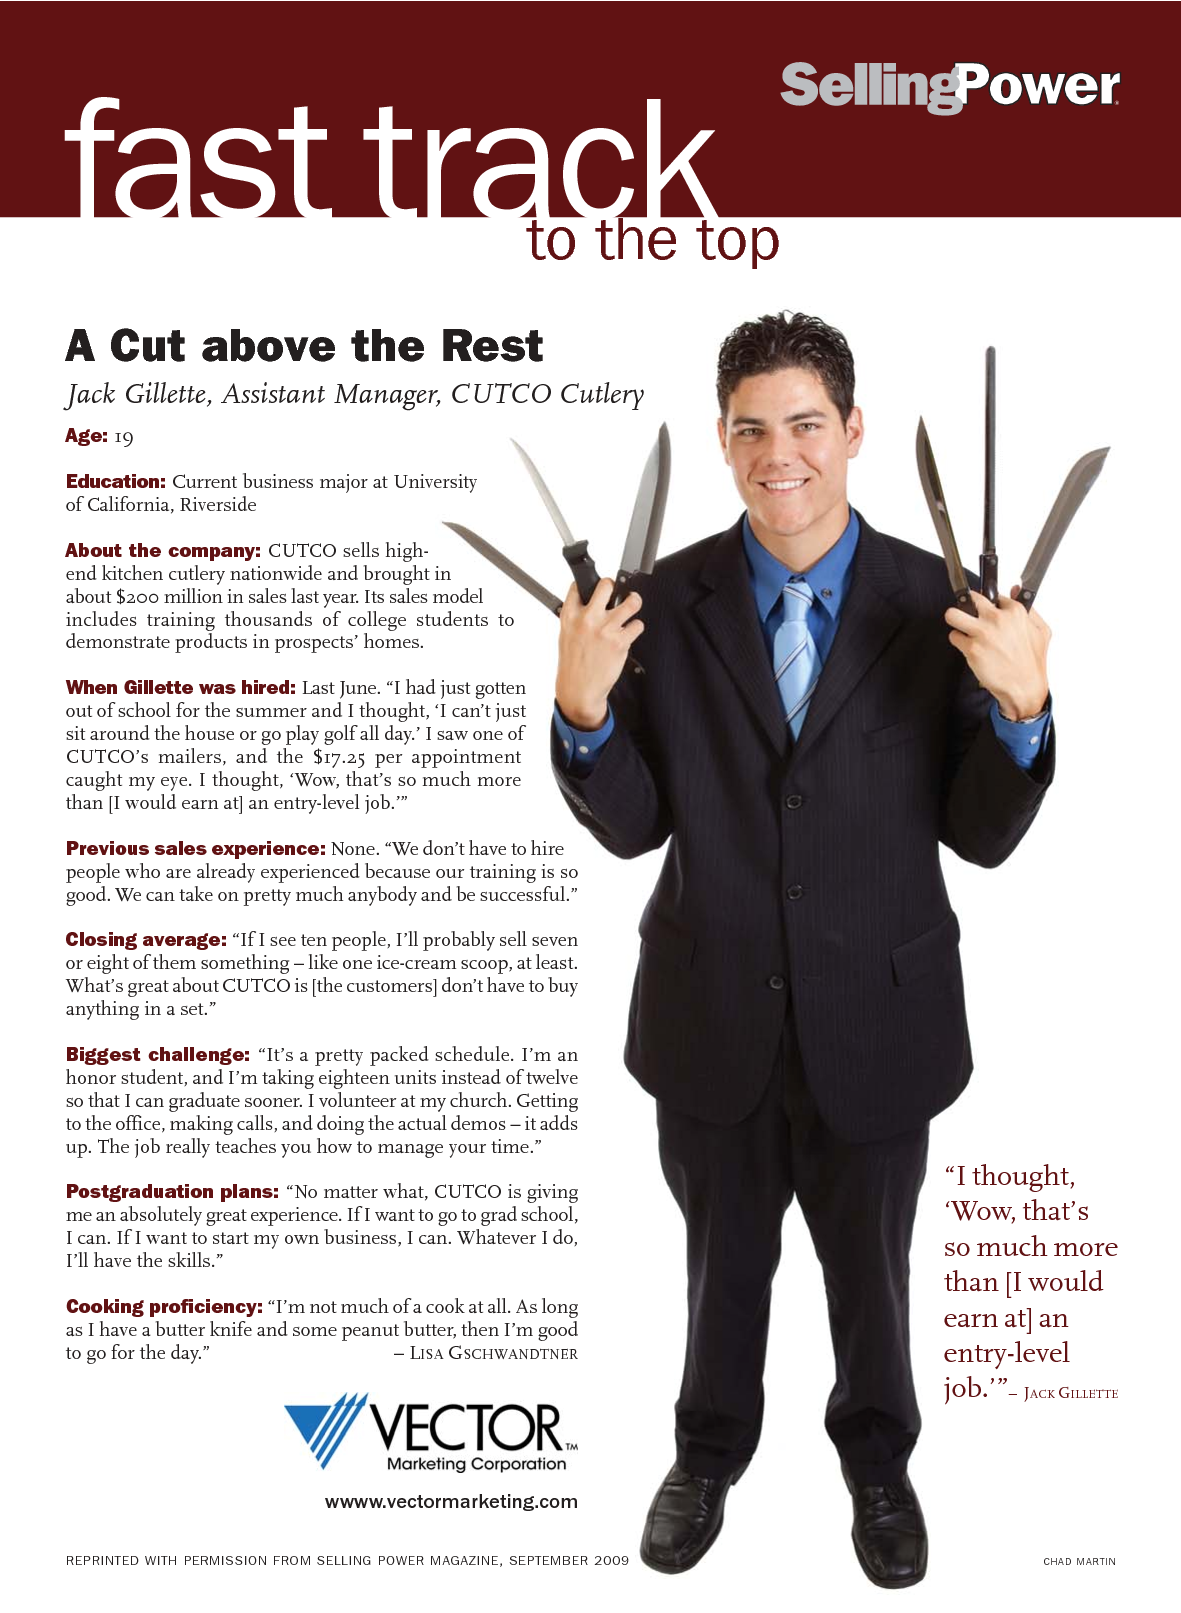 1181x1613 Not The Sharpest Knives Vector Marketing And Its Tactics Of